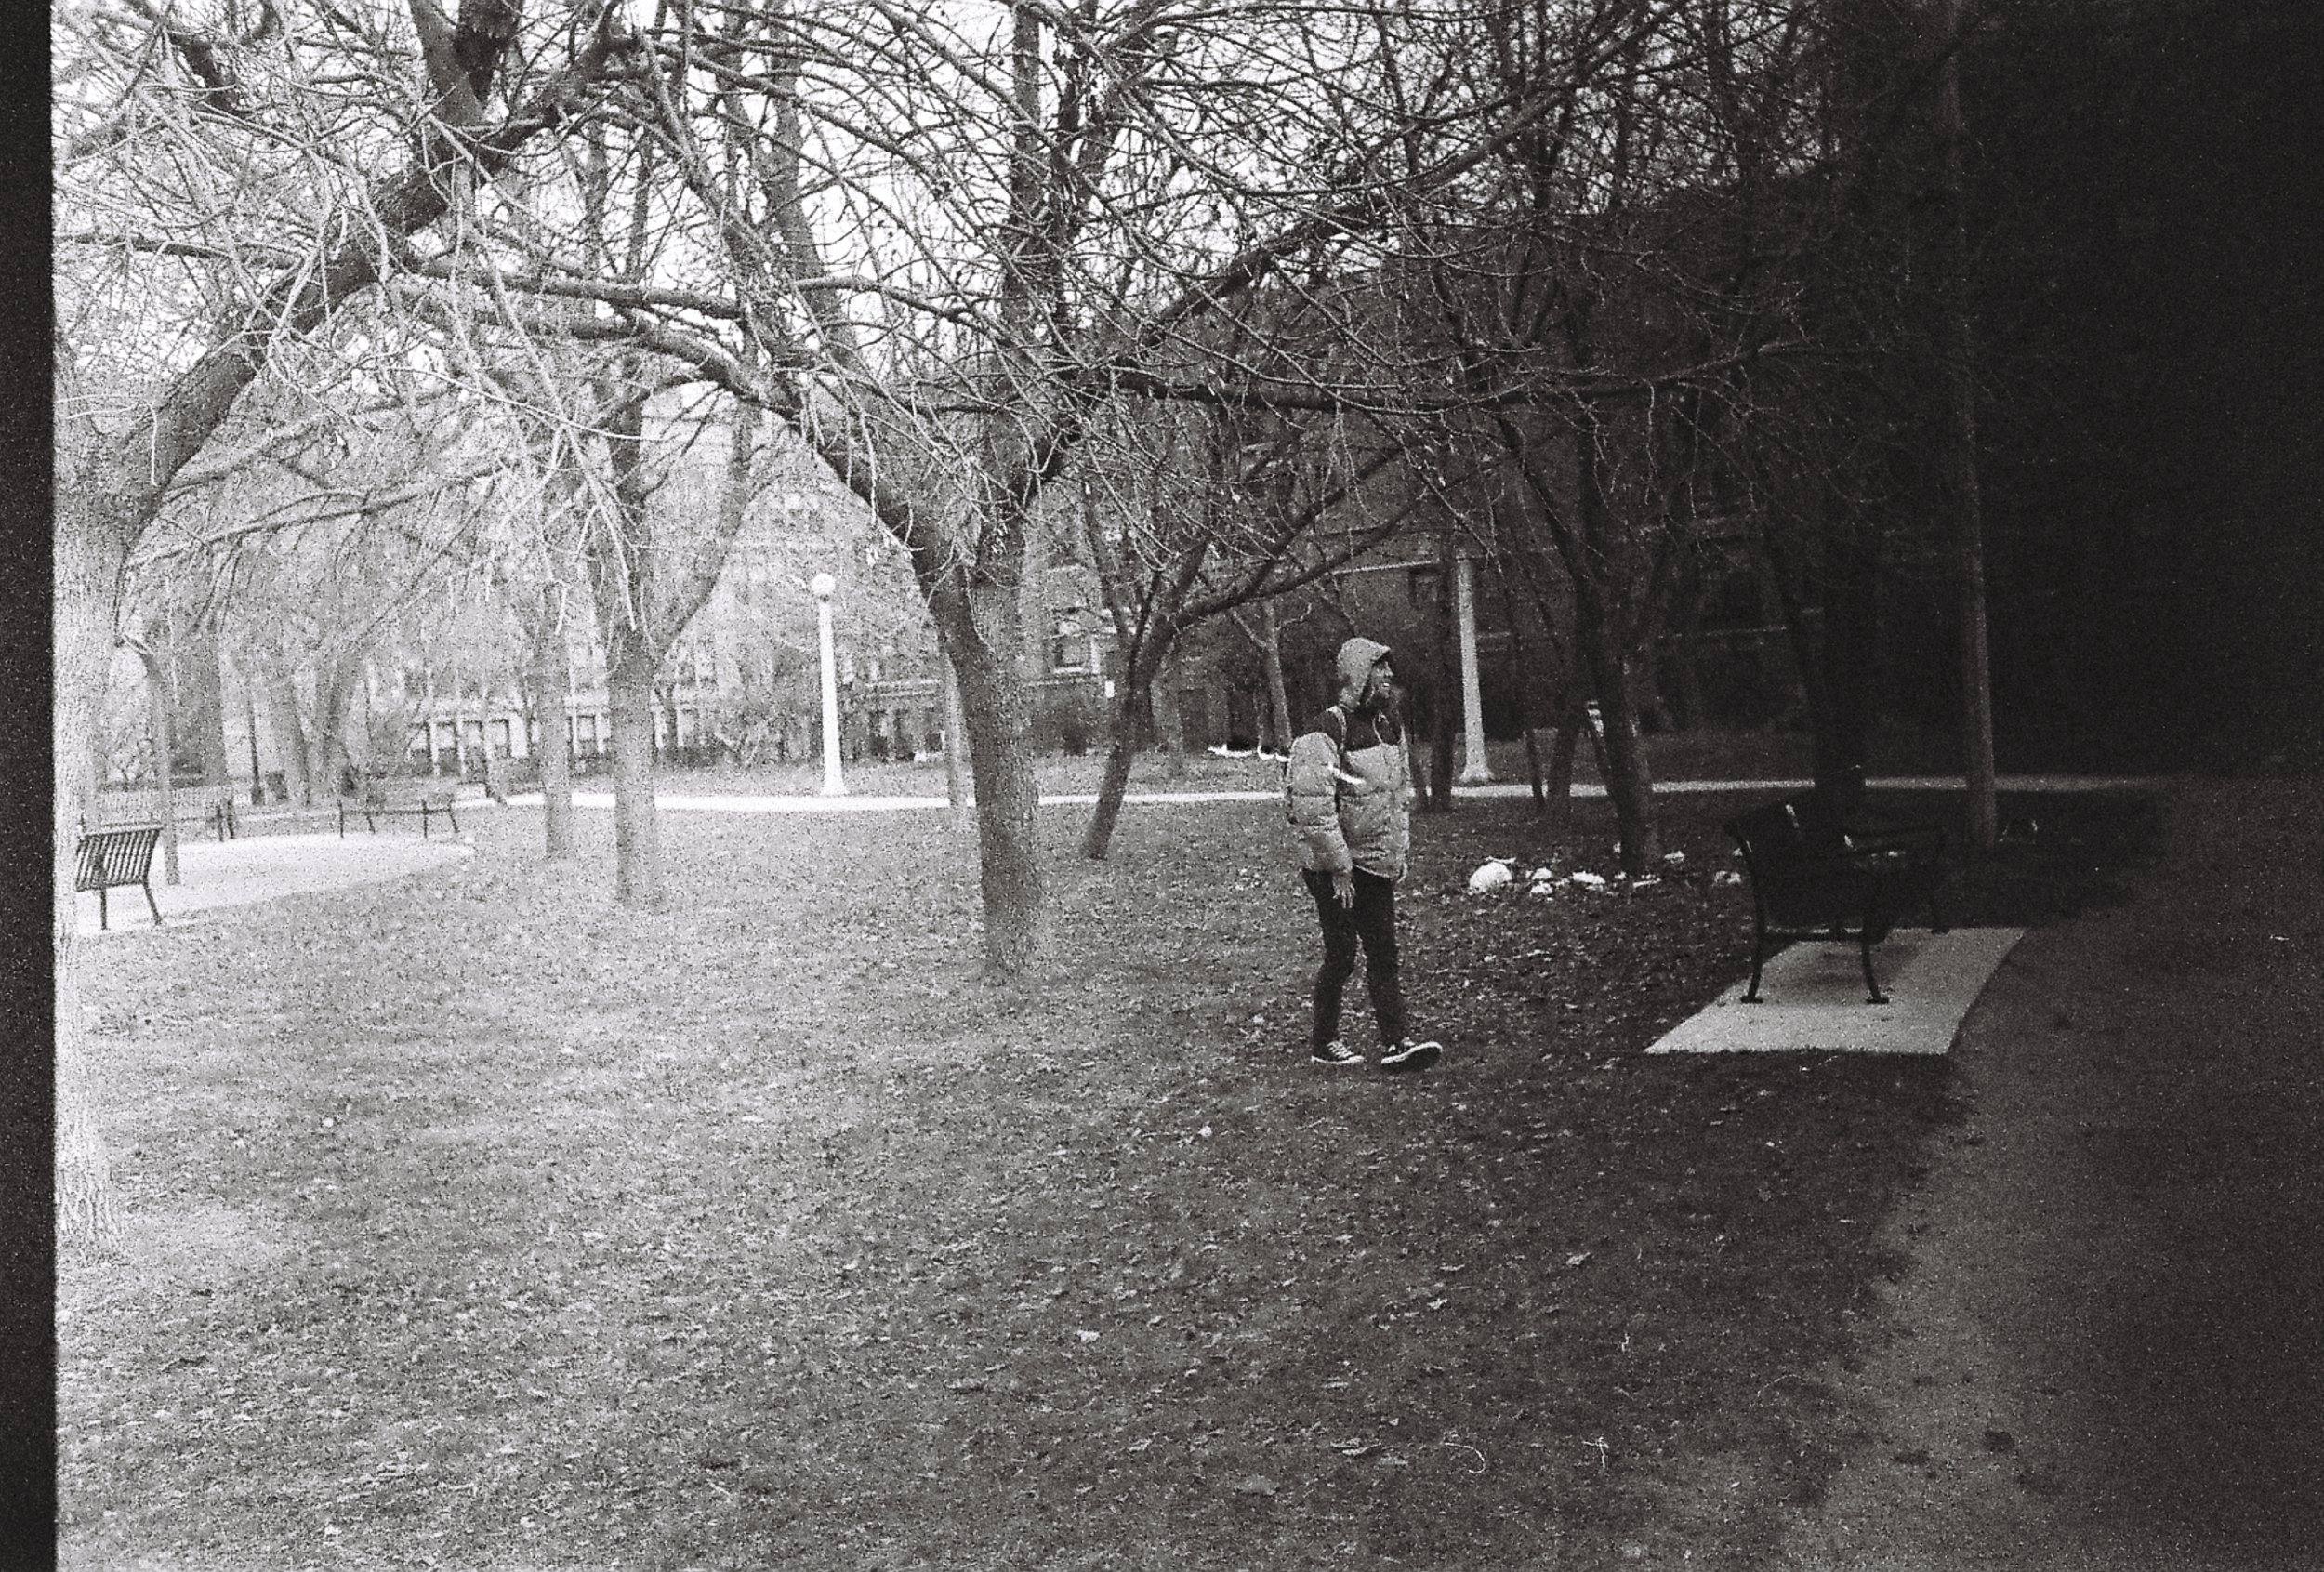 Nic in Chicago Park